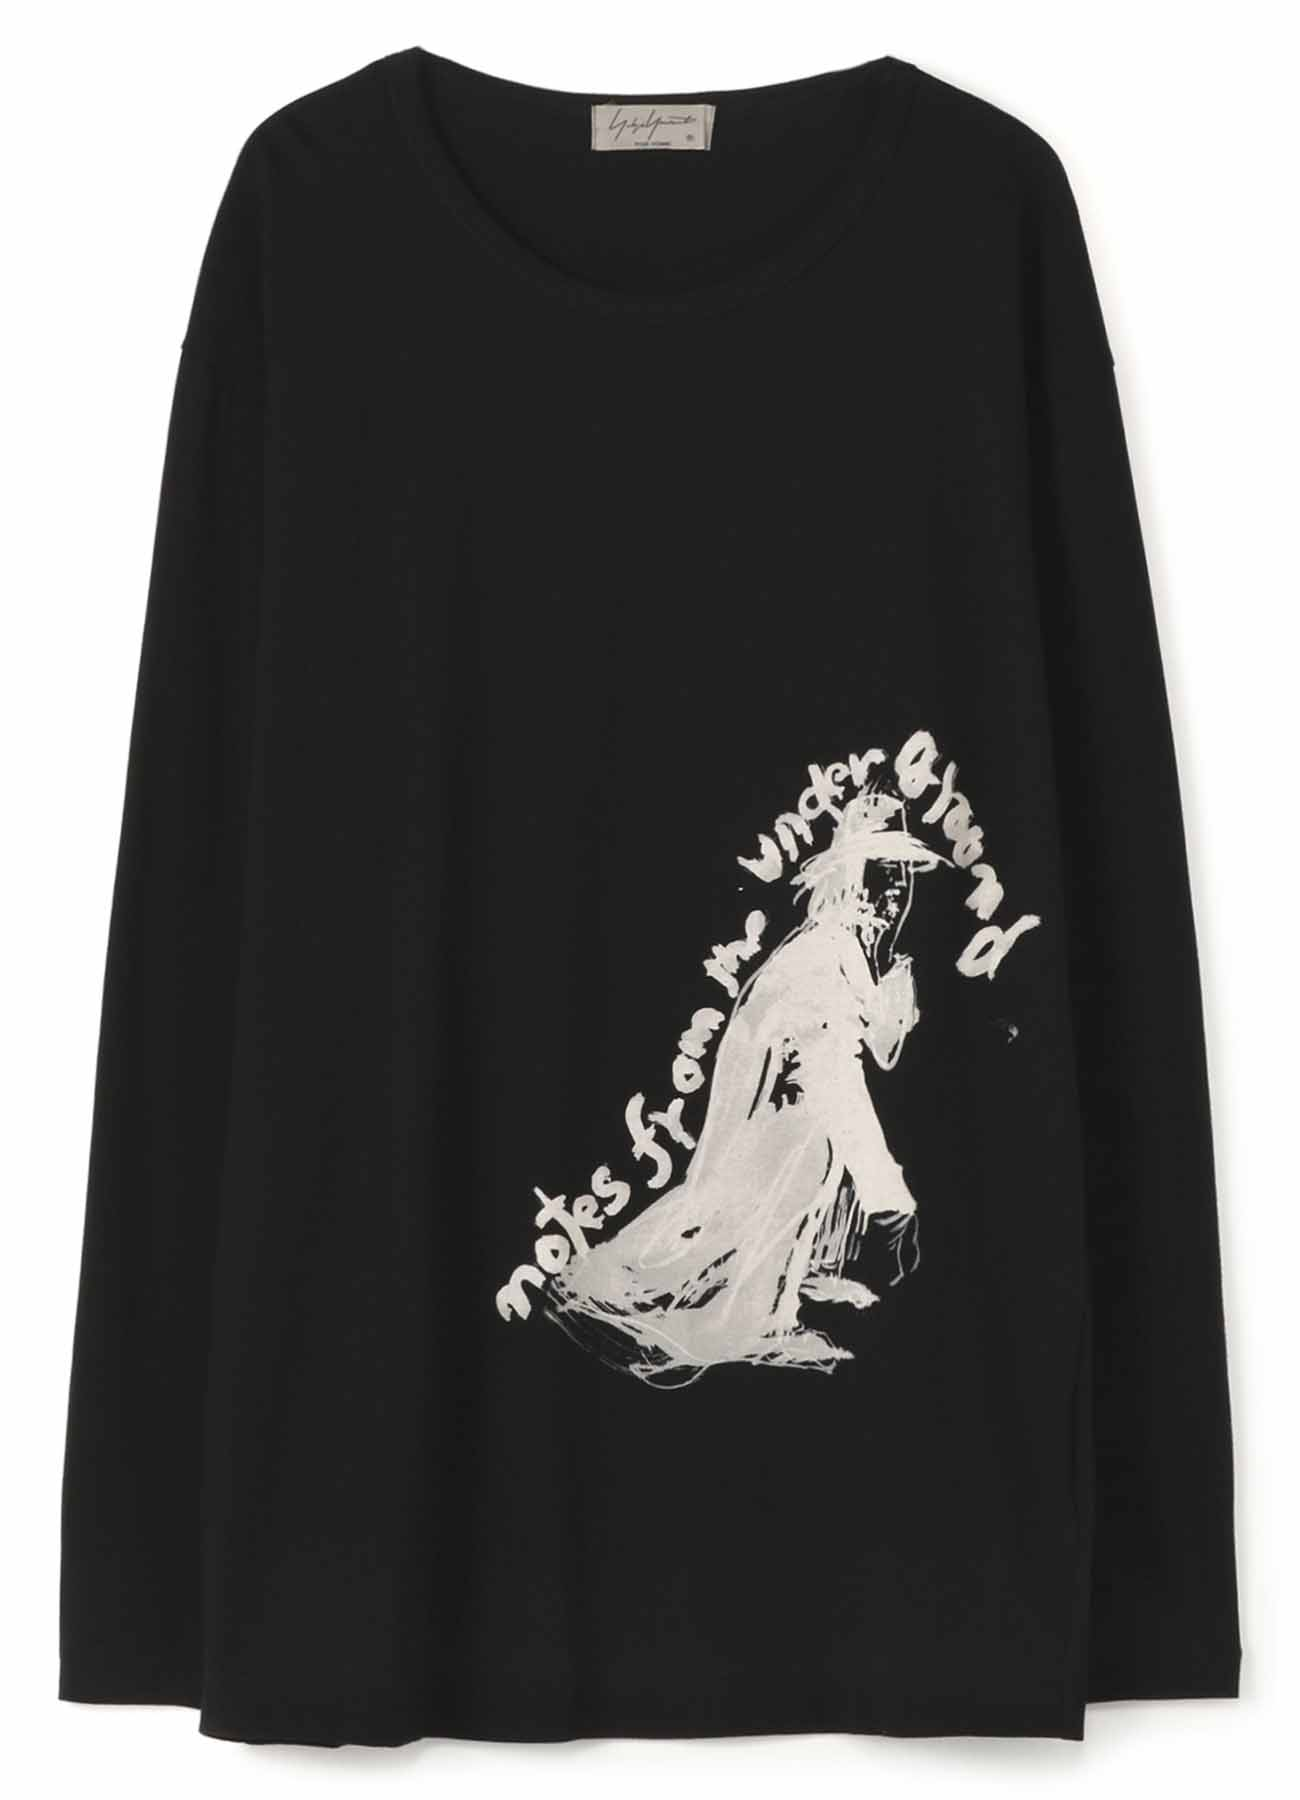 ULTIMA PRESIDENT DISCHARGED DYE PRINT LONG SLEEVE